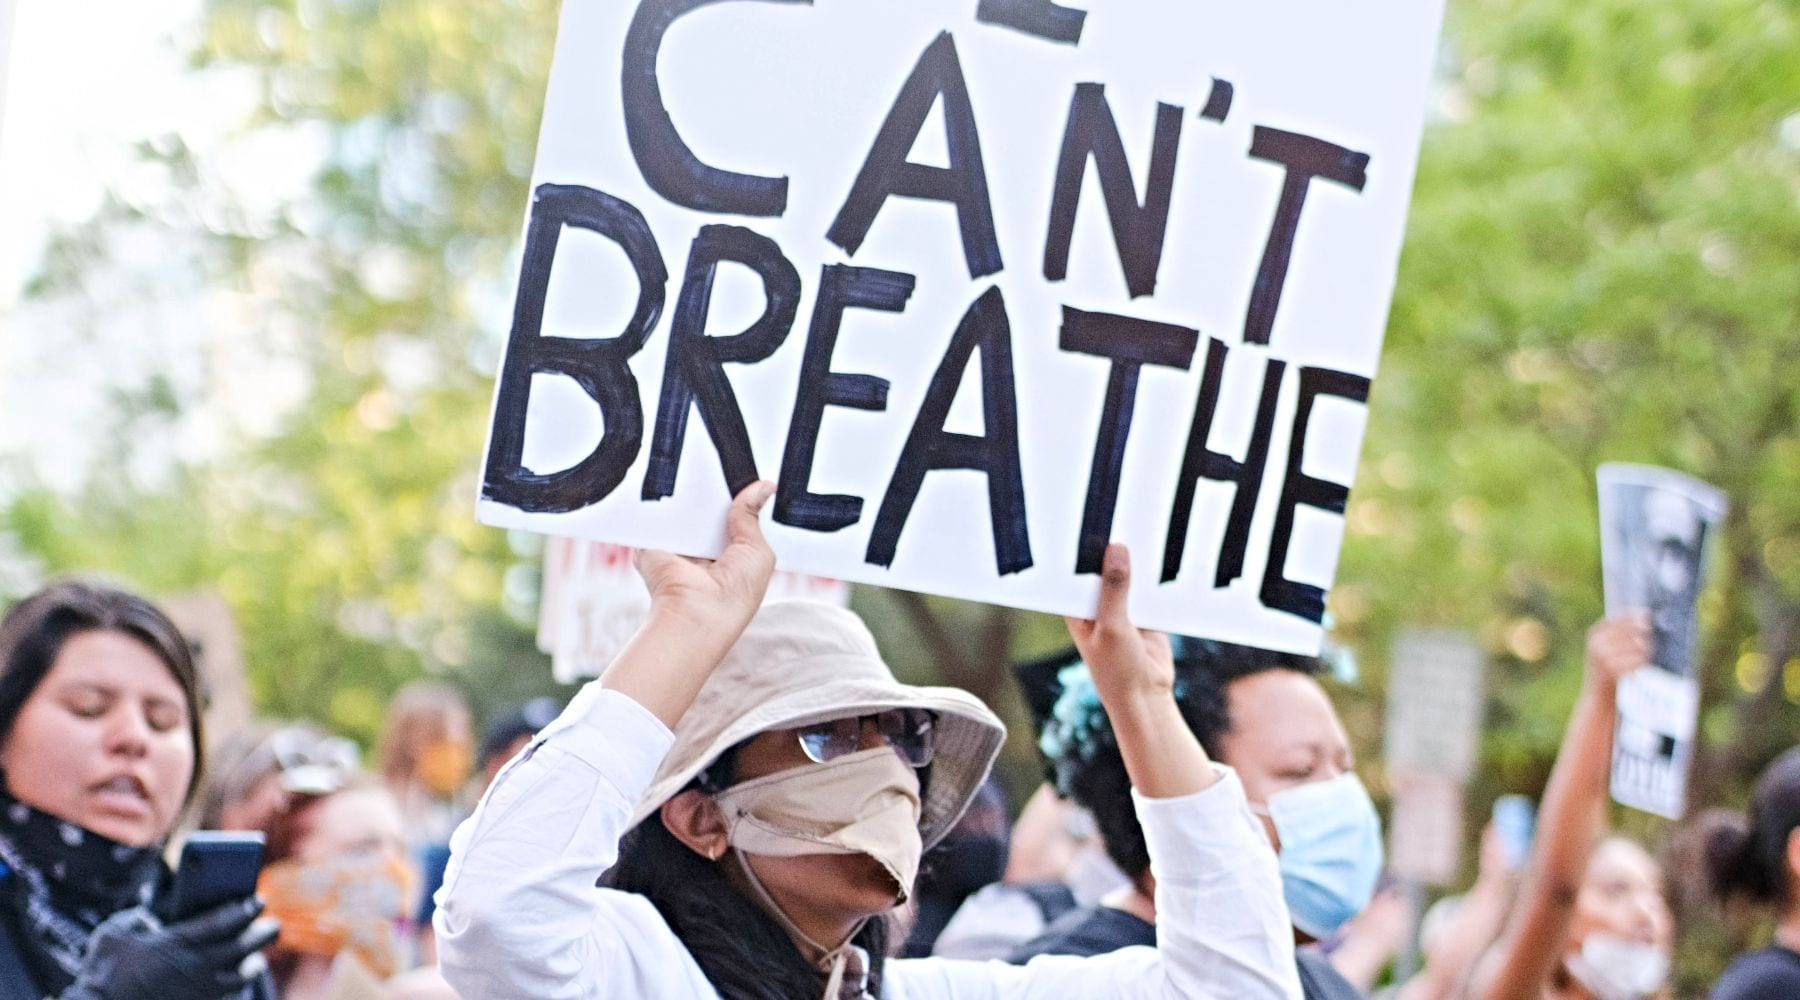 Protester marching with I can't breathe sign